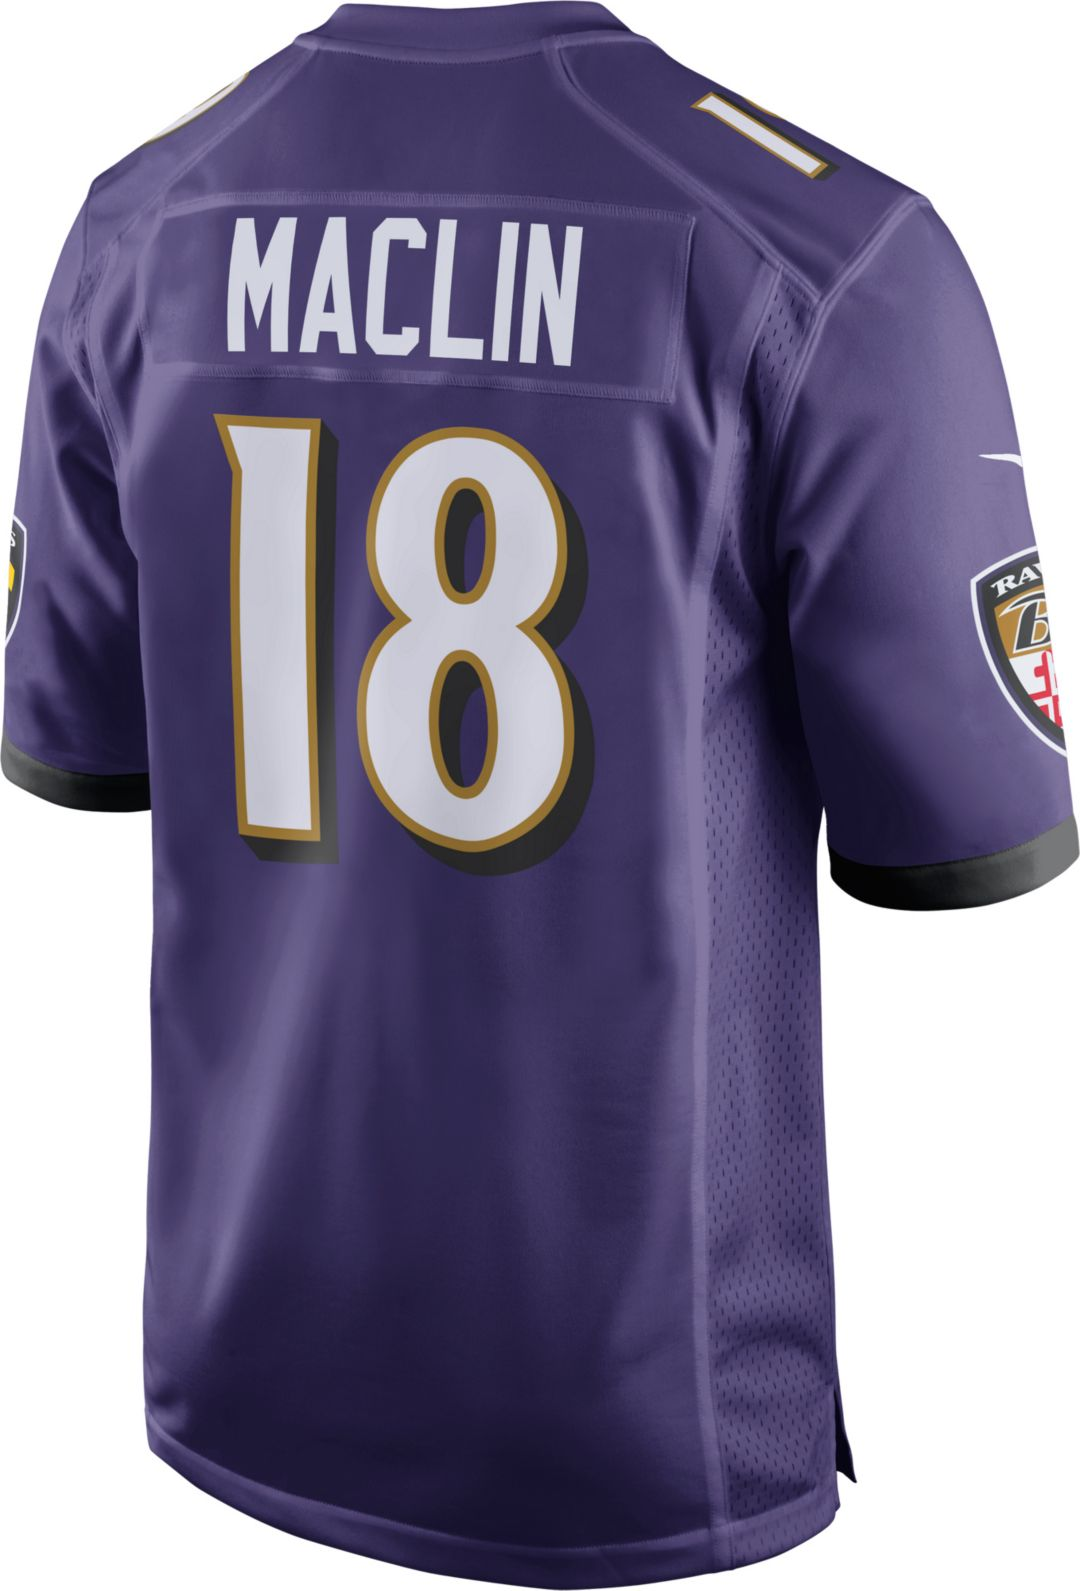 cheap for discount d01d7 a76ce Nike Men's Home Game Jersey Baltimore Ravens Jeremy Maclin #18